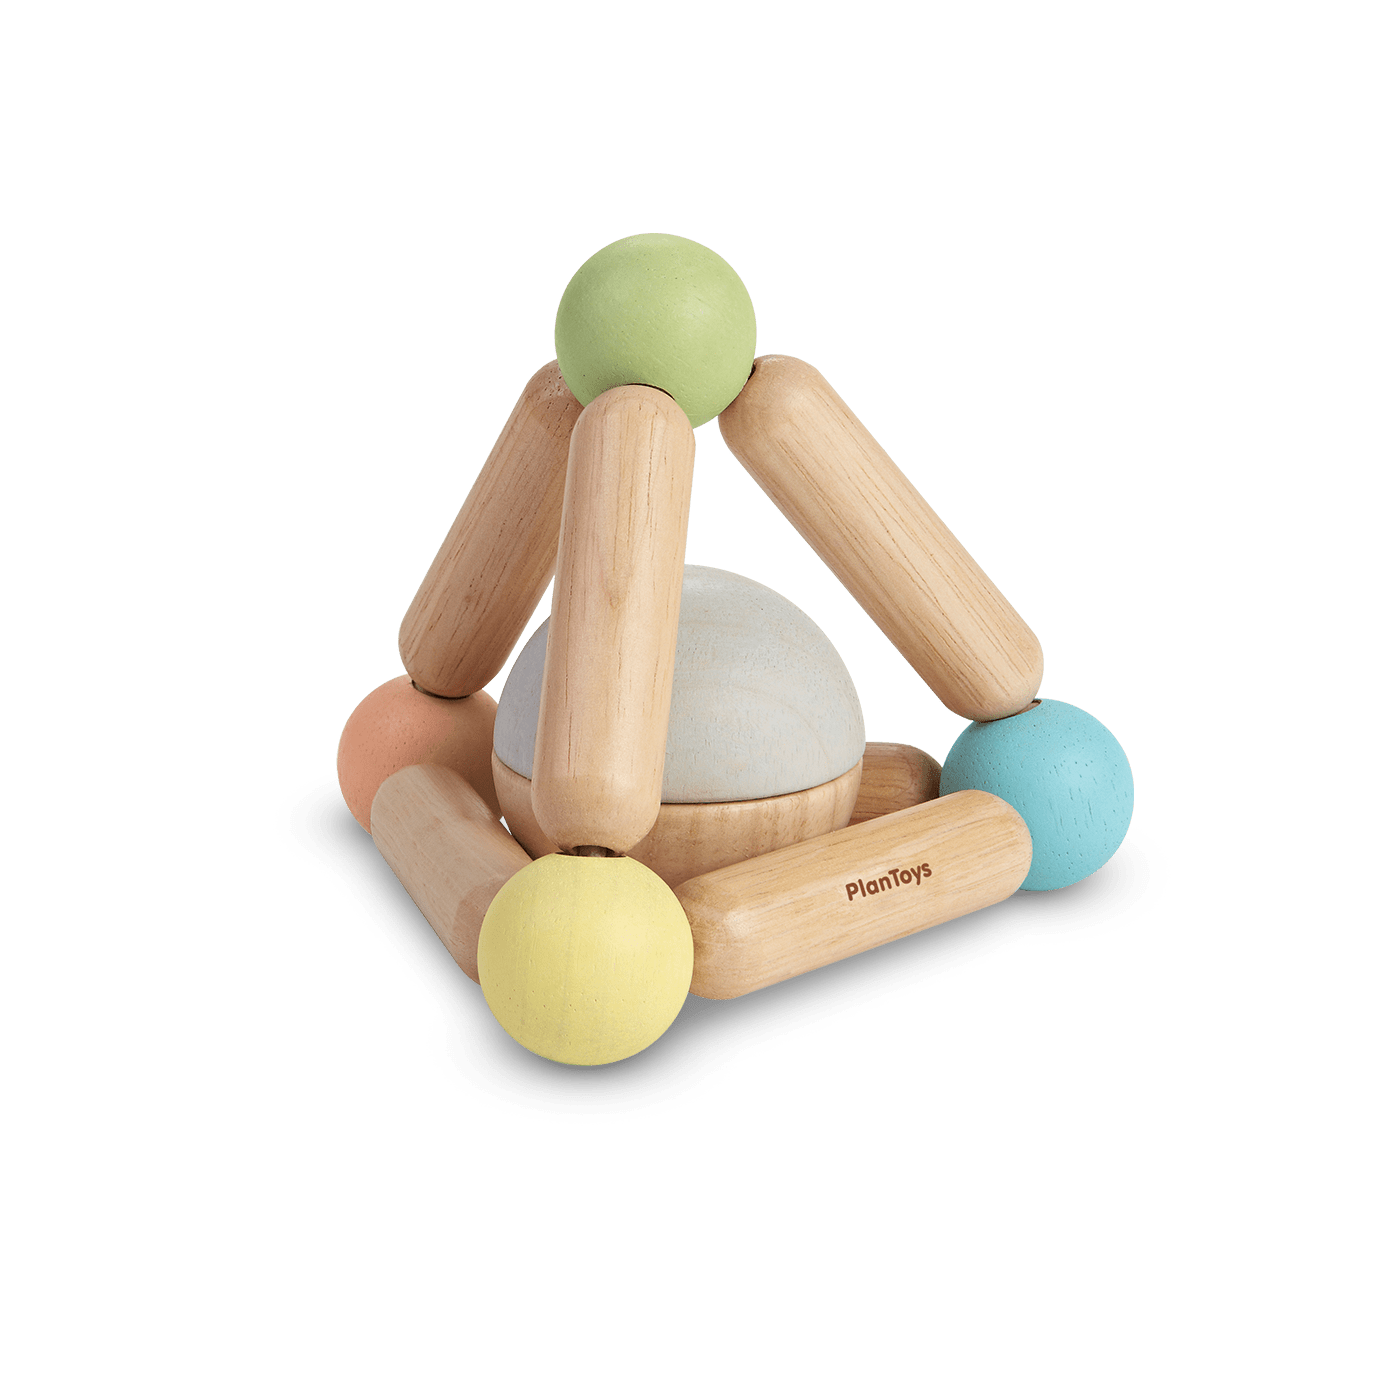 5256_PlanToys_TRIANGLE_CLUTCHING_TOY_Babies_Gross_Motor_Fine_Motor_Coordination_Auditory_Visual_Tactile_6m_Wooden_toys_Education_toys_Safety_Toys_Non-toxic_0.png